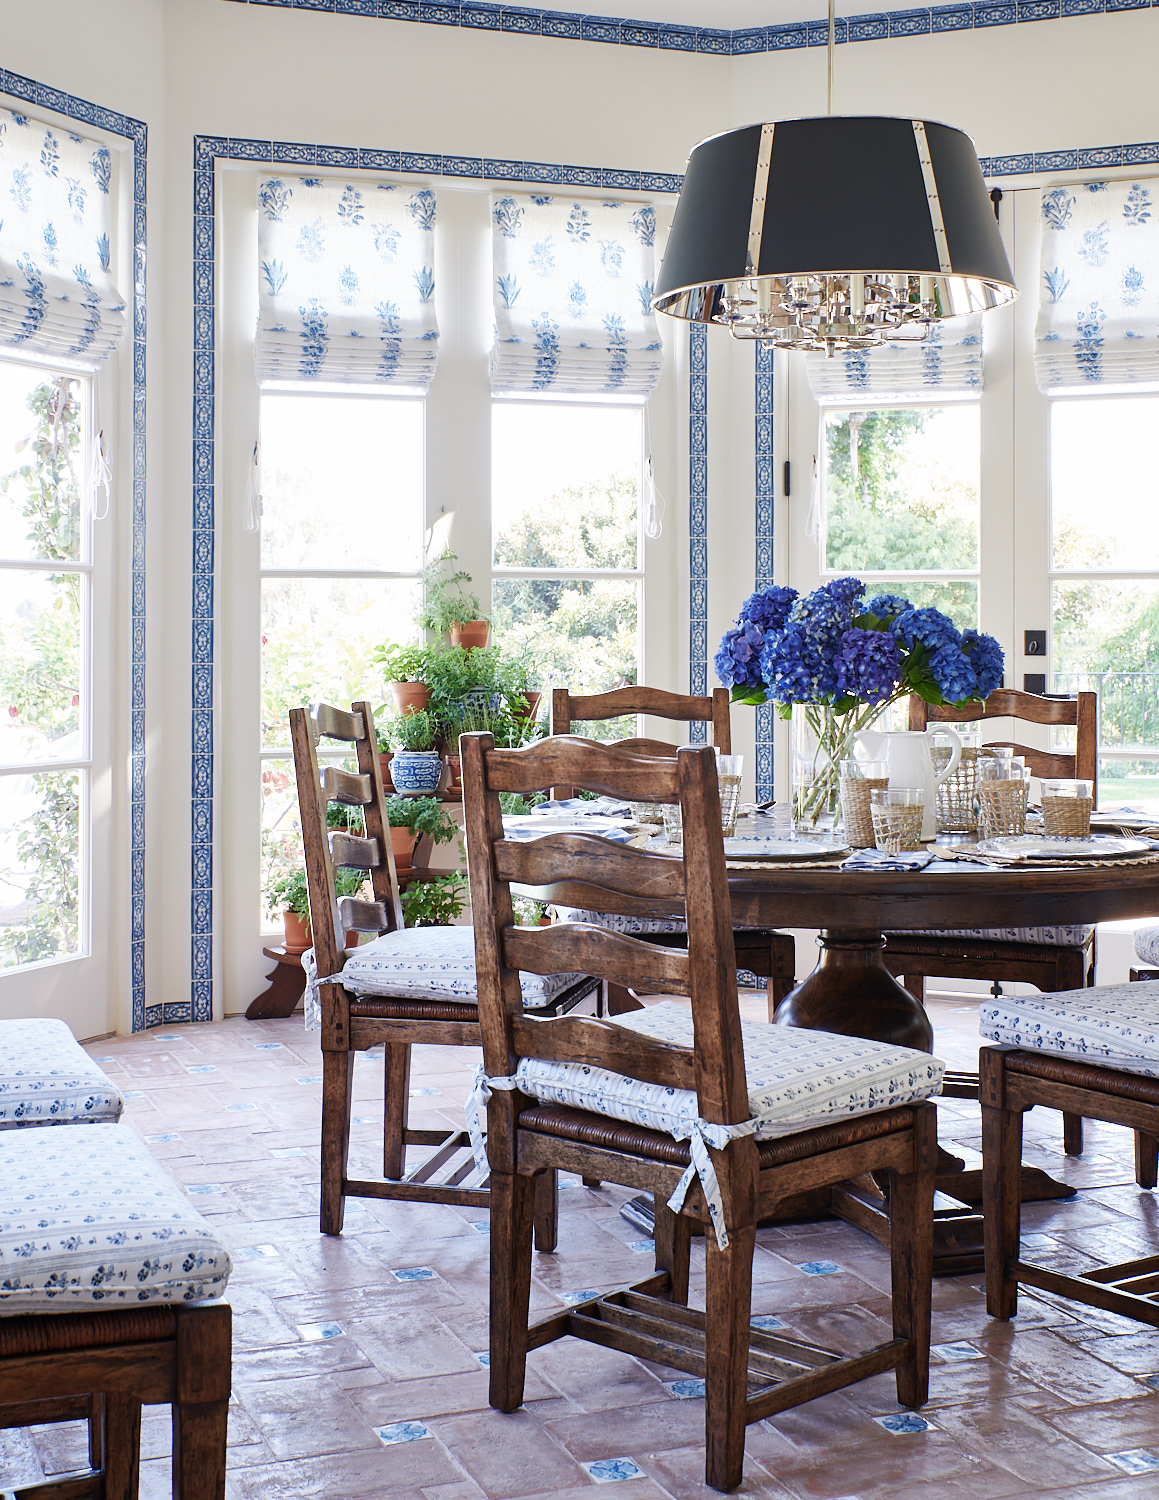 Breakfast nook roman shades and tied banquet cushions